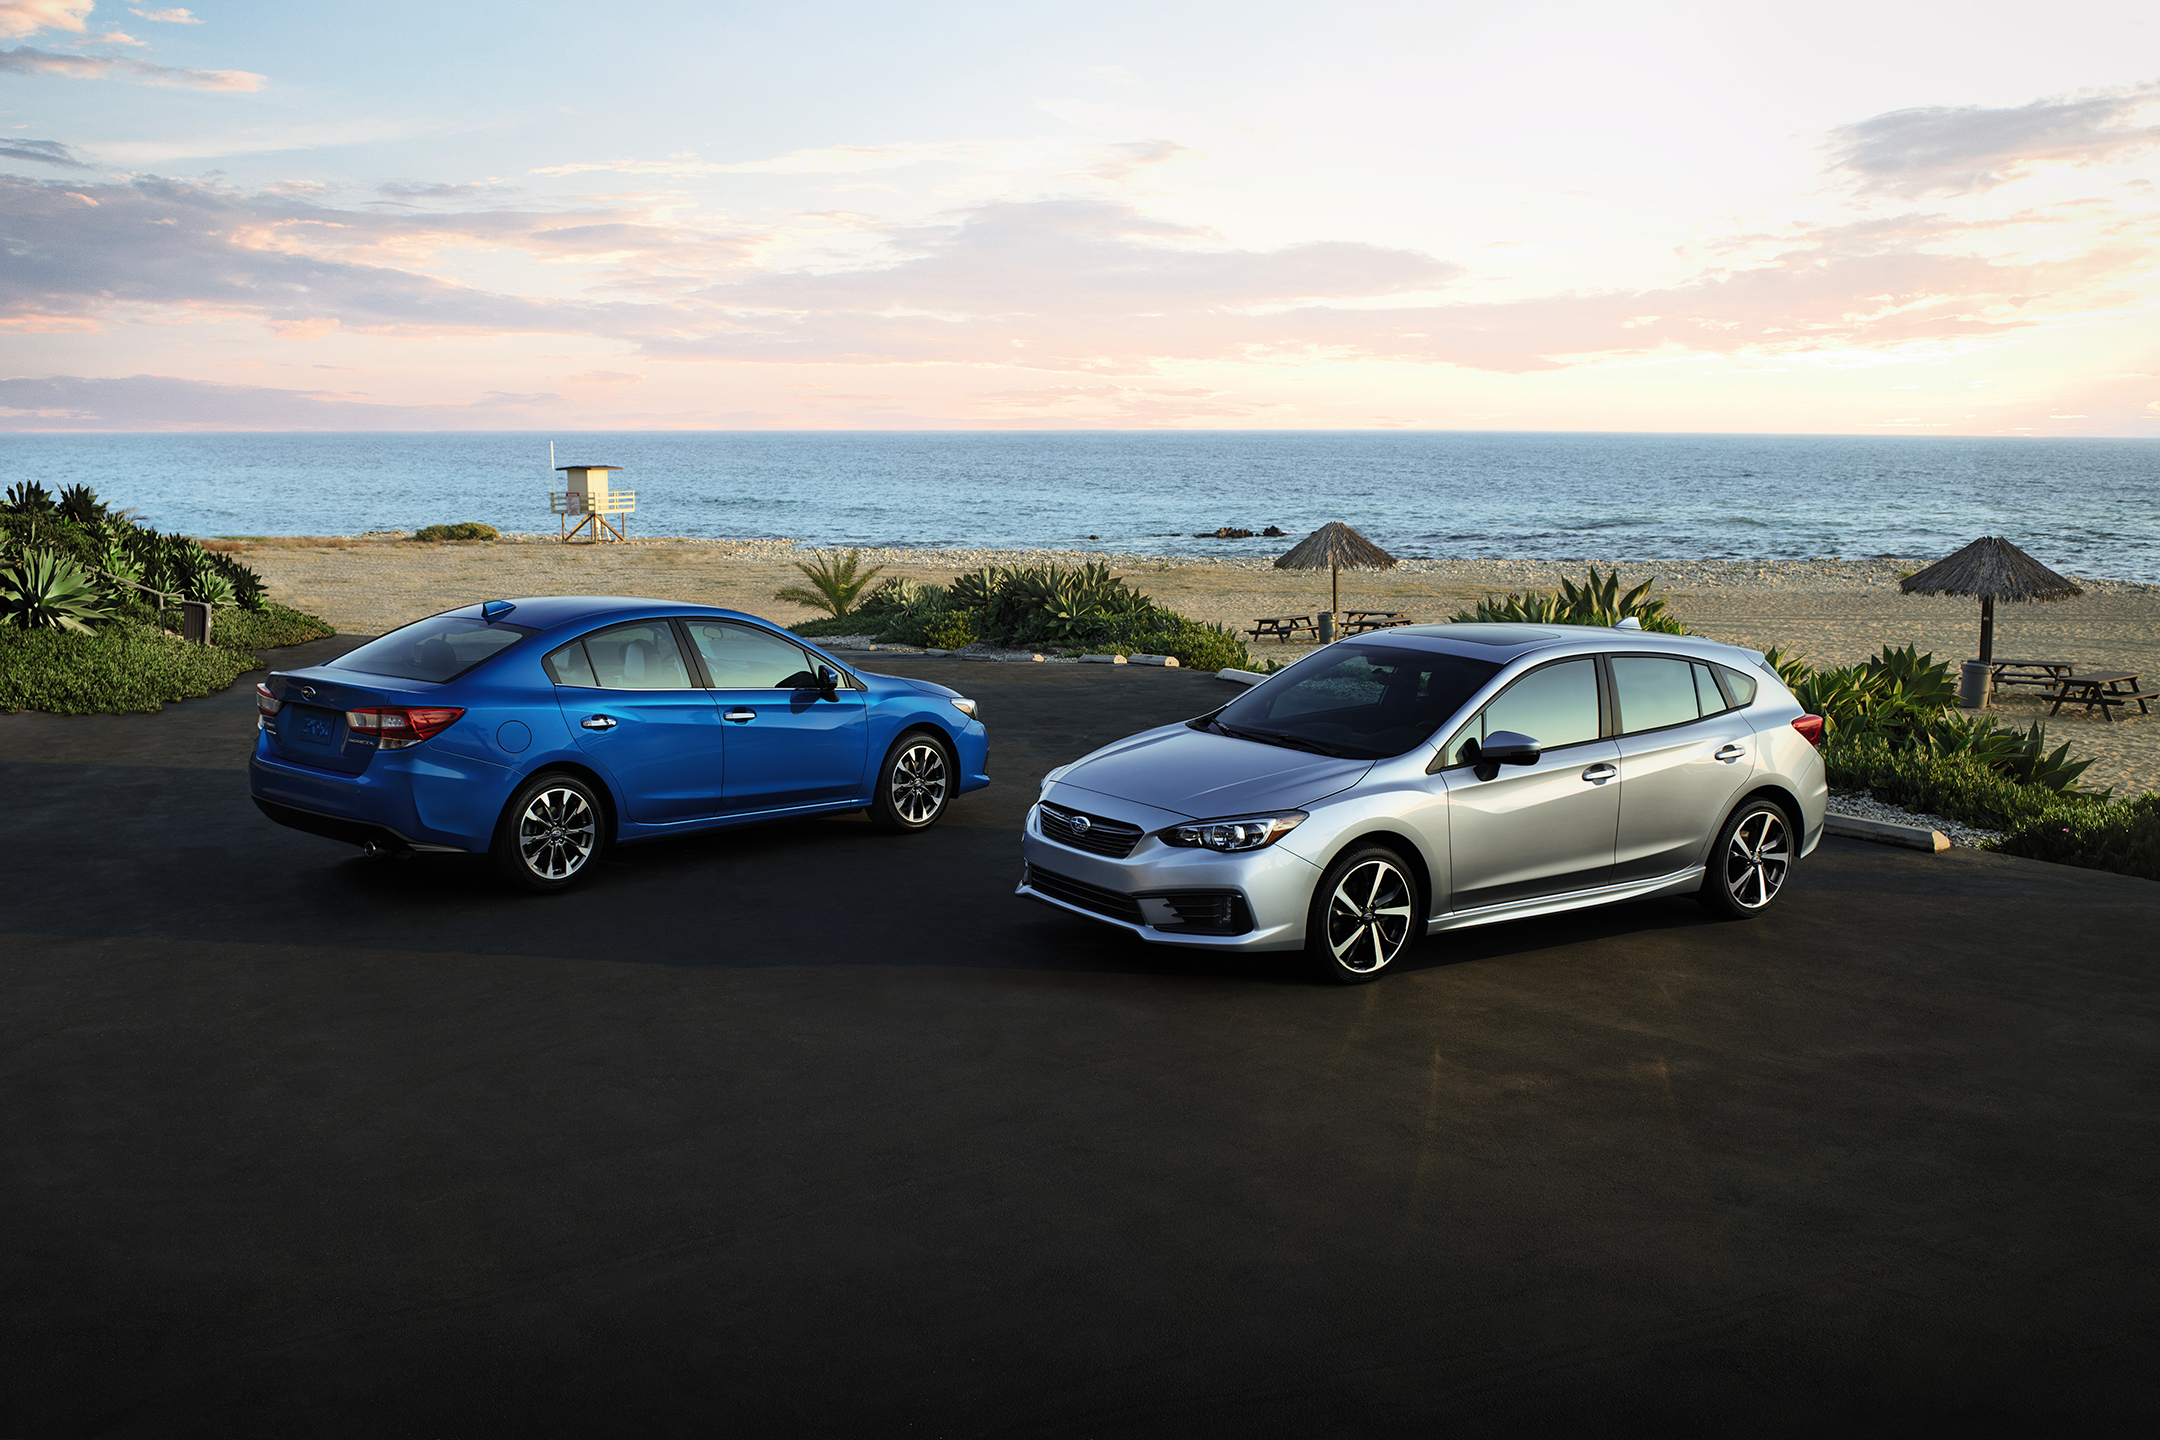 Subaru Impreza: Which Should I Buy, 2019 or 2020?